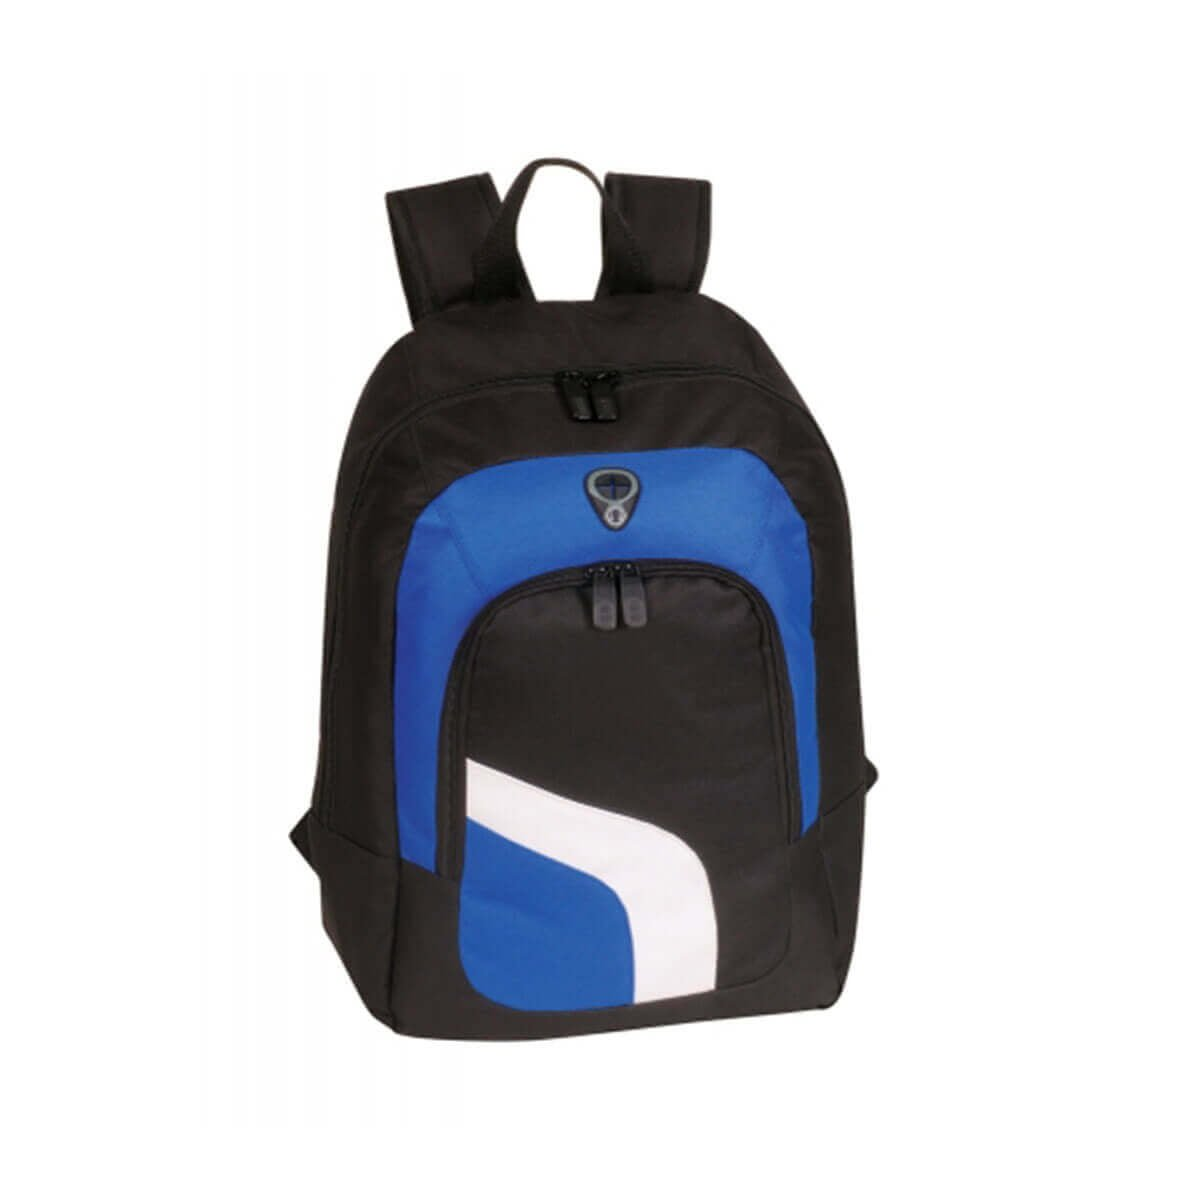 Backpack-Black / White / Royal